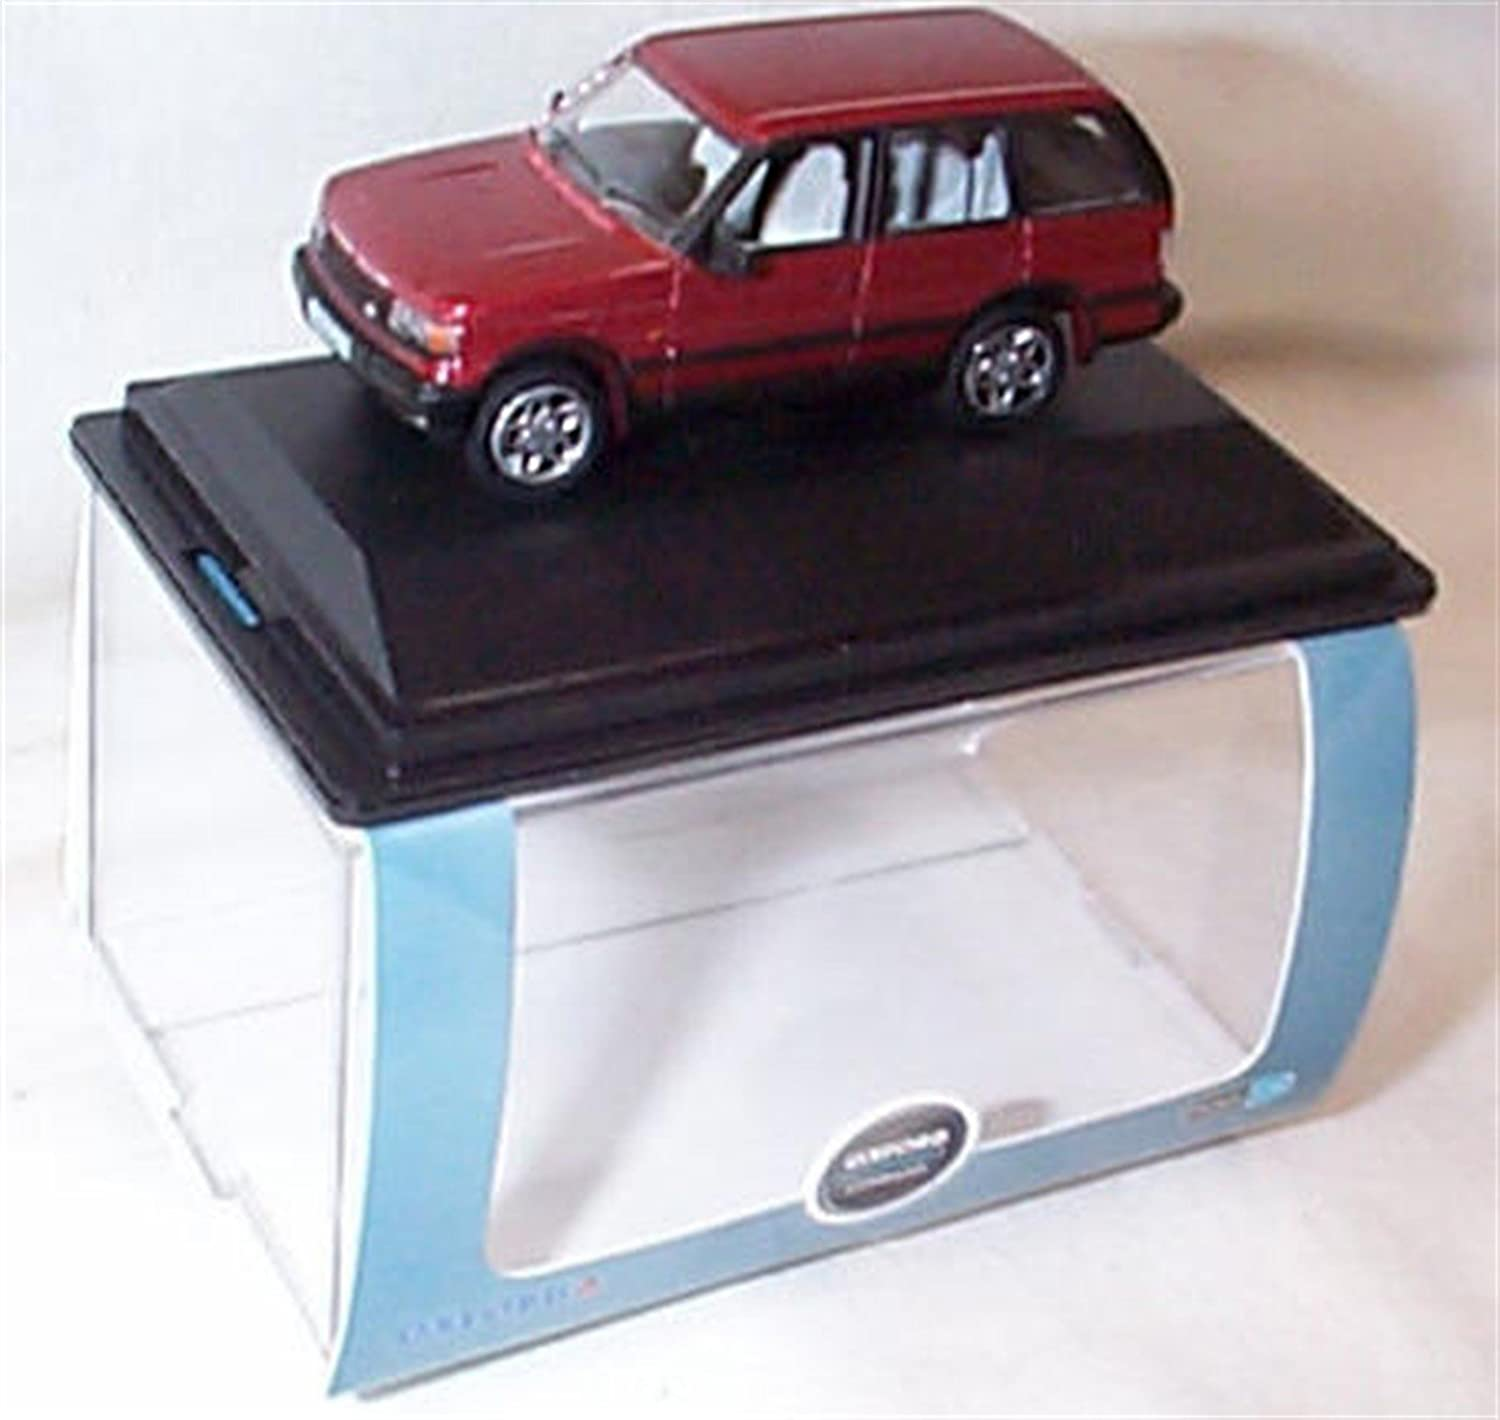 a3f7f3c0952e oxford range rover P38 rioja red car 1 76 railway scale diecast model   Amazon.co.uk  Toys   Games